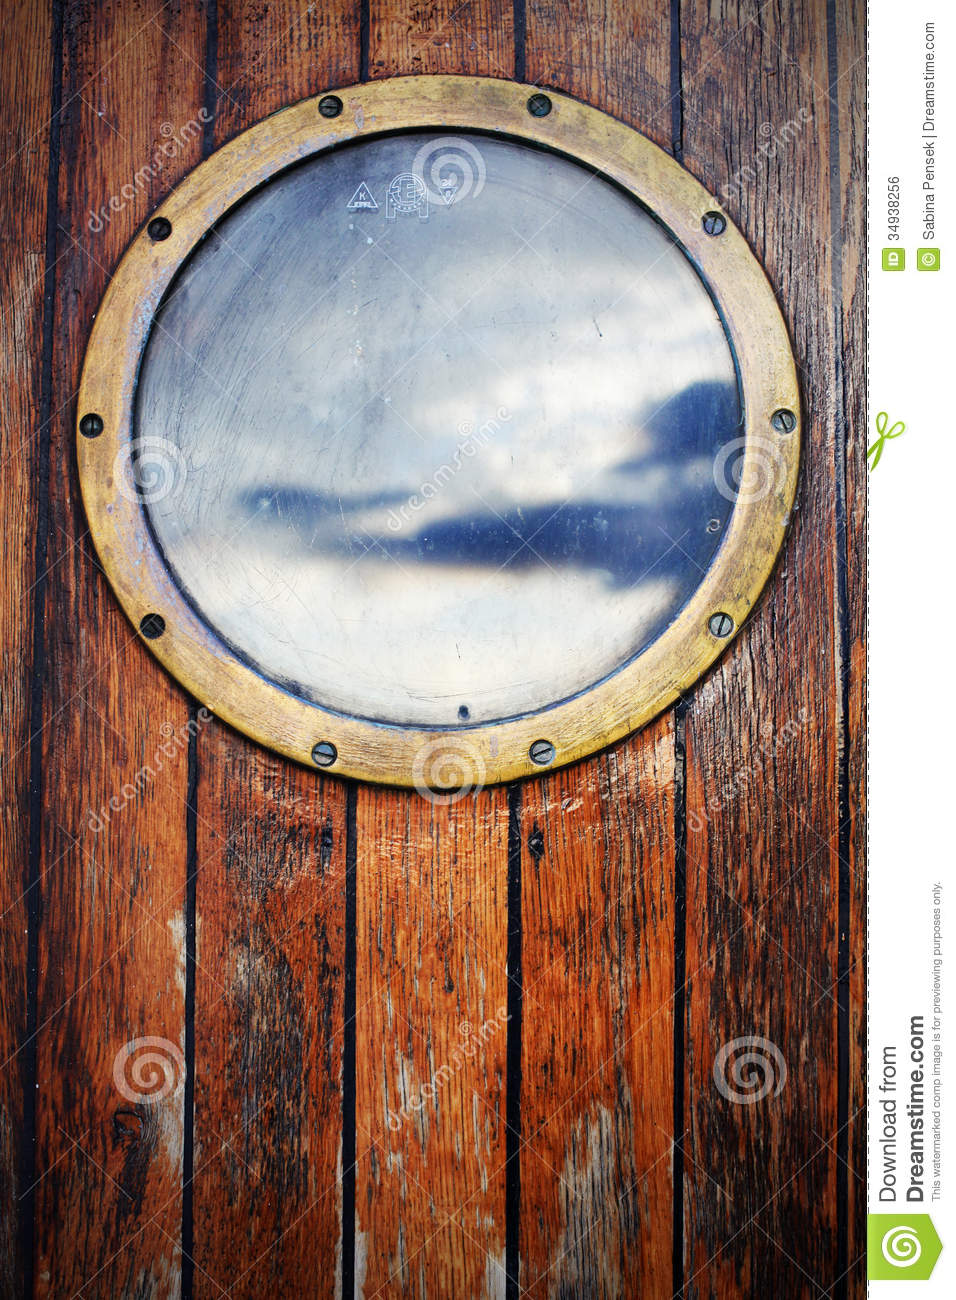 porthole ship window on wooden doors sky reflection royalty free stock image image 34938256. Black Bedroom Furniture Sets. Home Design Ideas